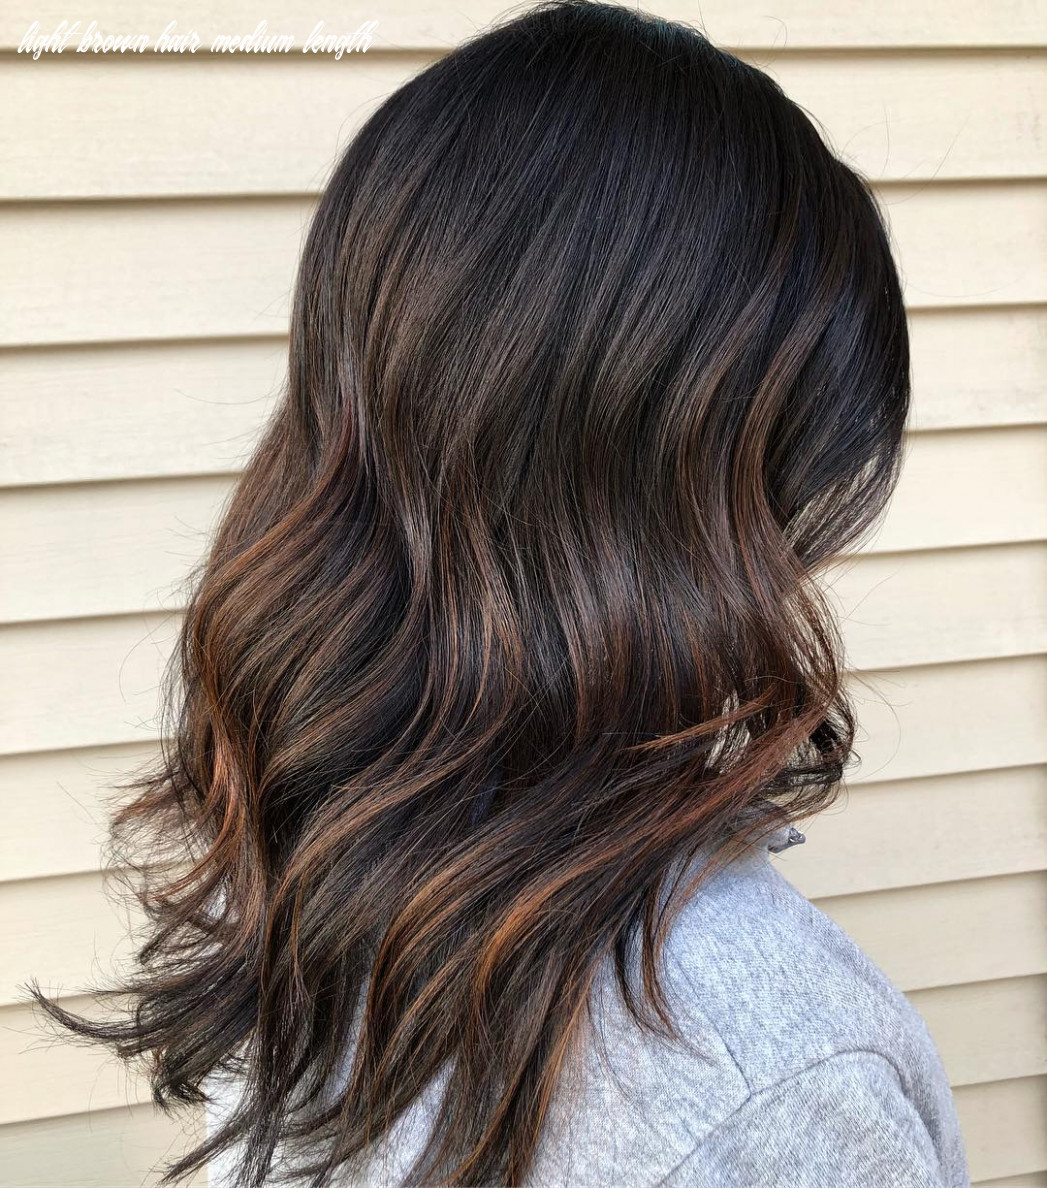 11 Dark Brown Hair with Highlights Ideas for 11 - Hair Adviser